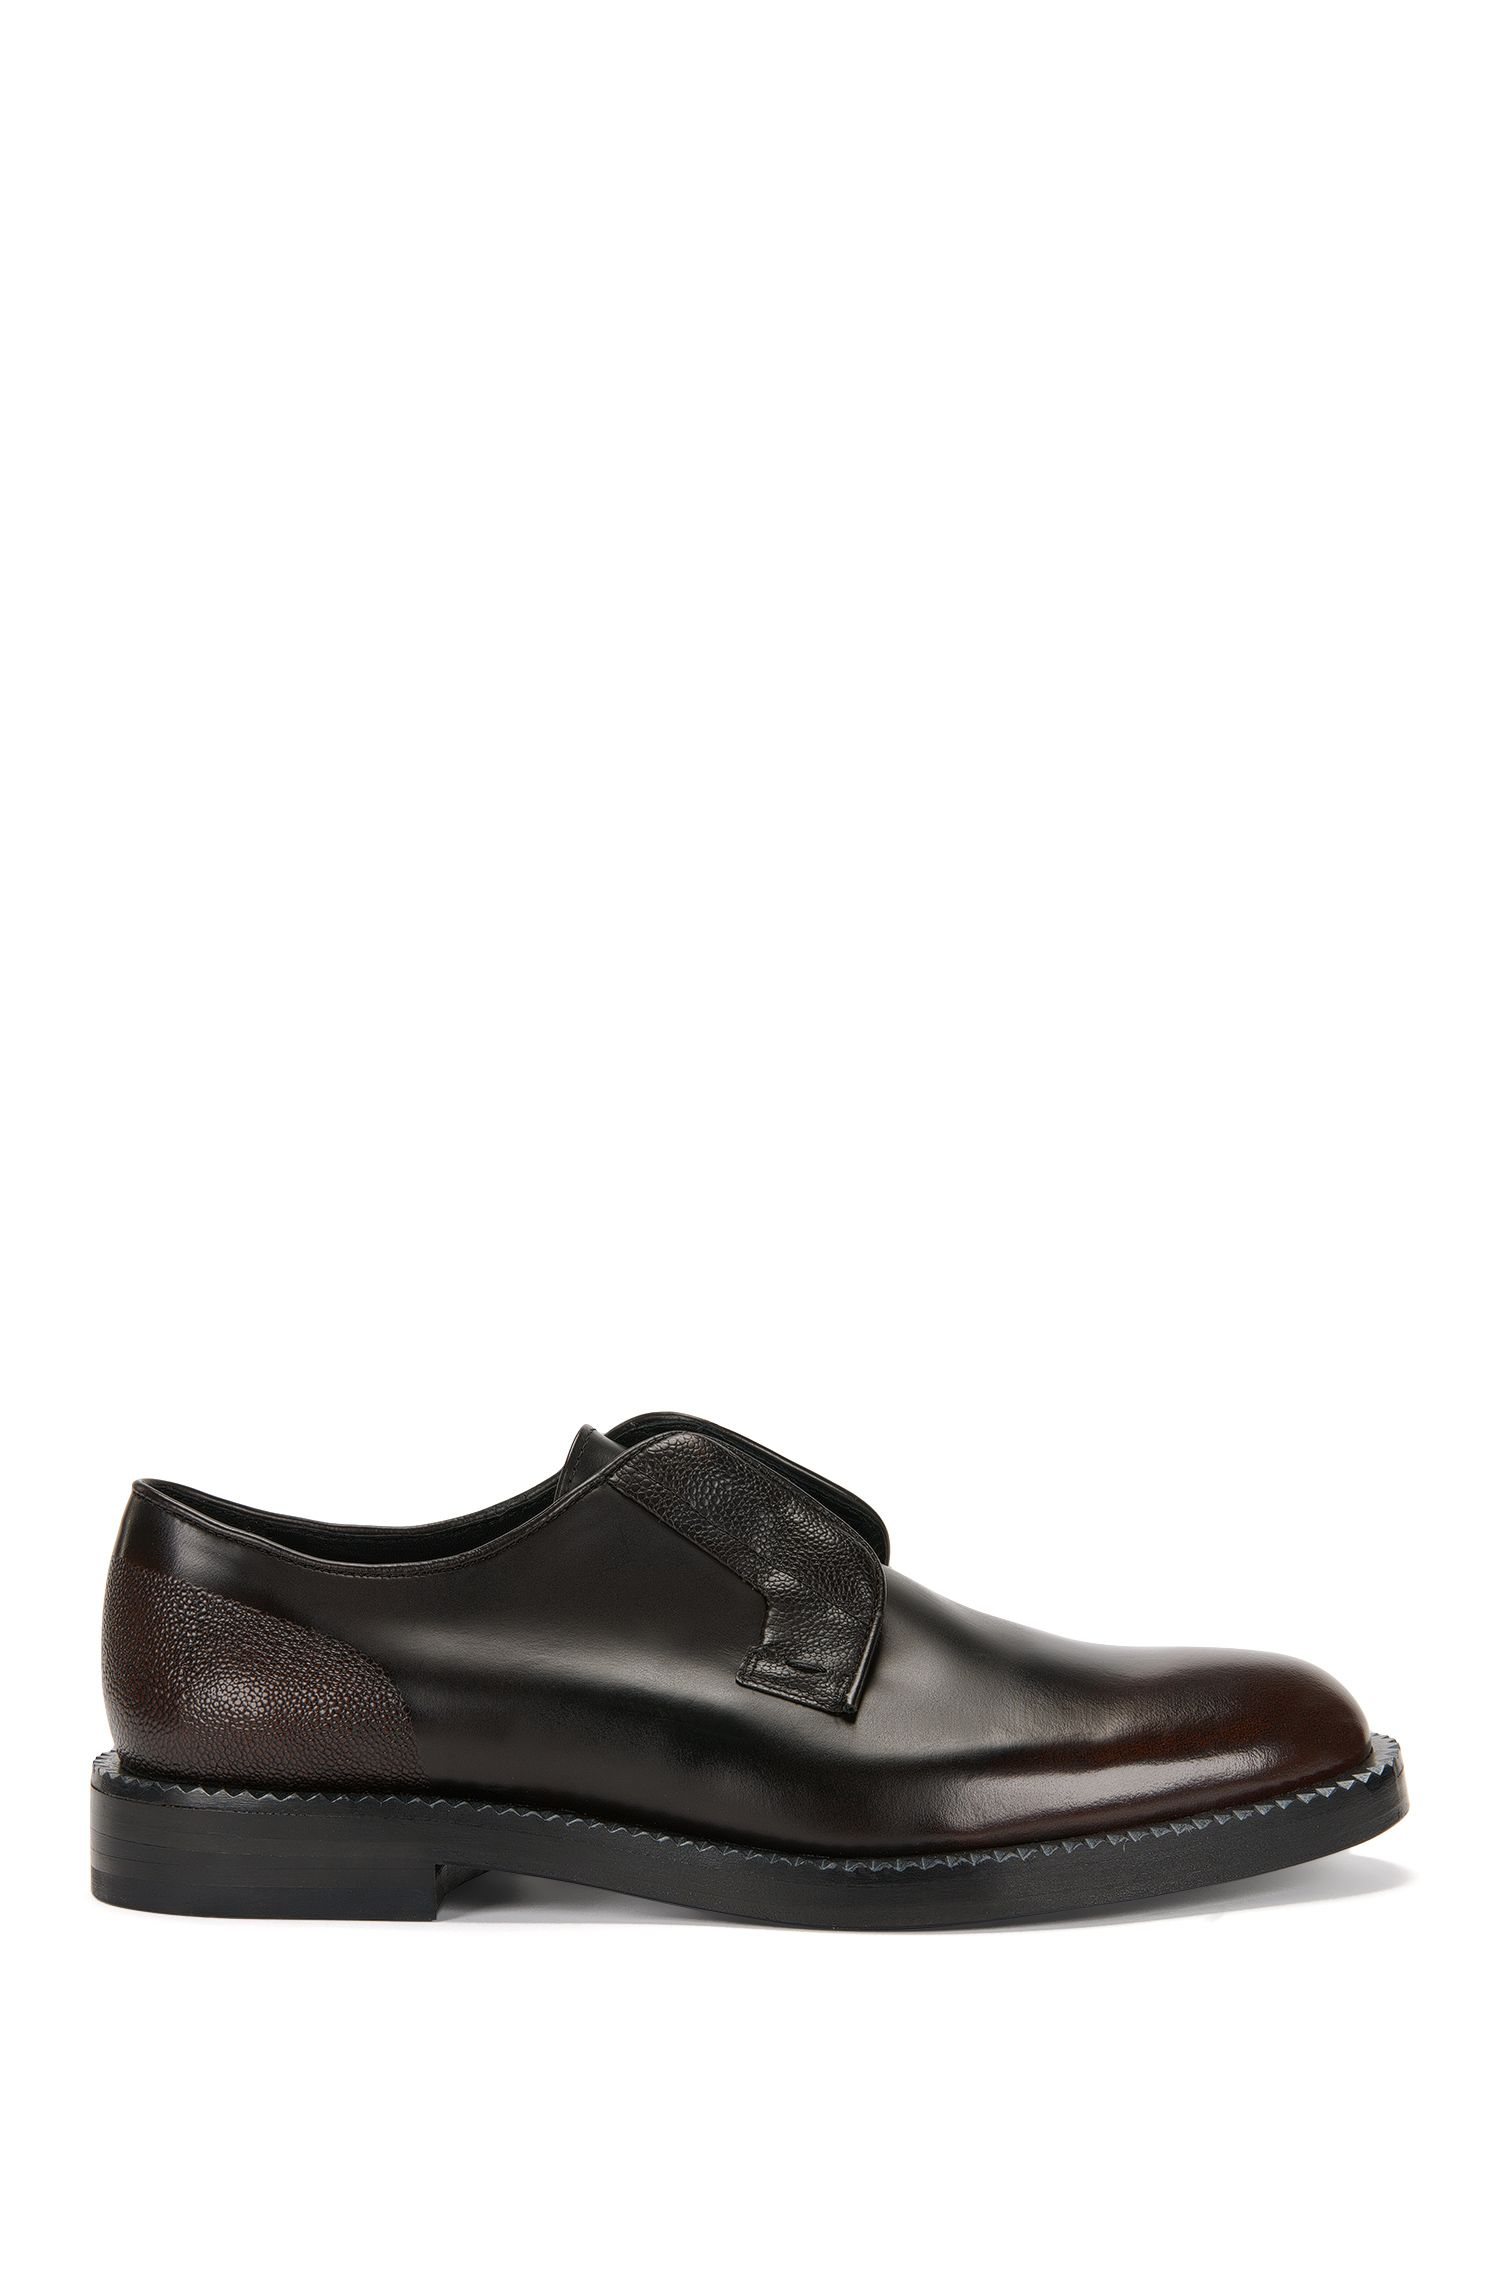 Leather lace-up shoes with scotchgrain detailing: 'Mono_Derb_mx'